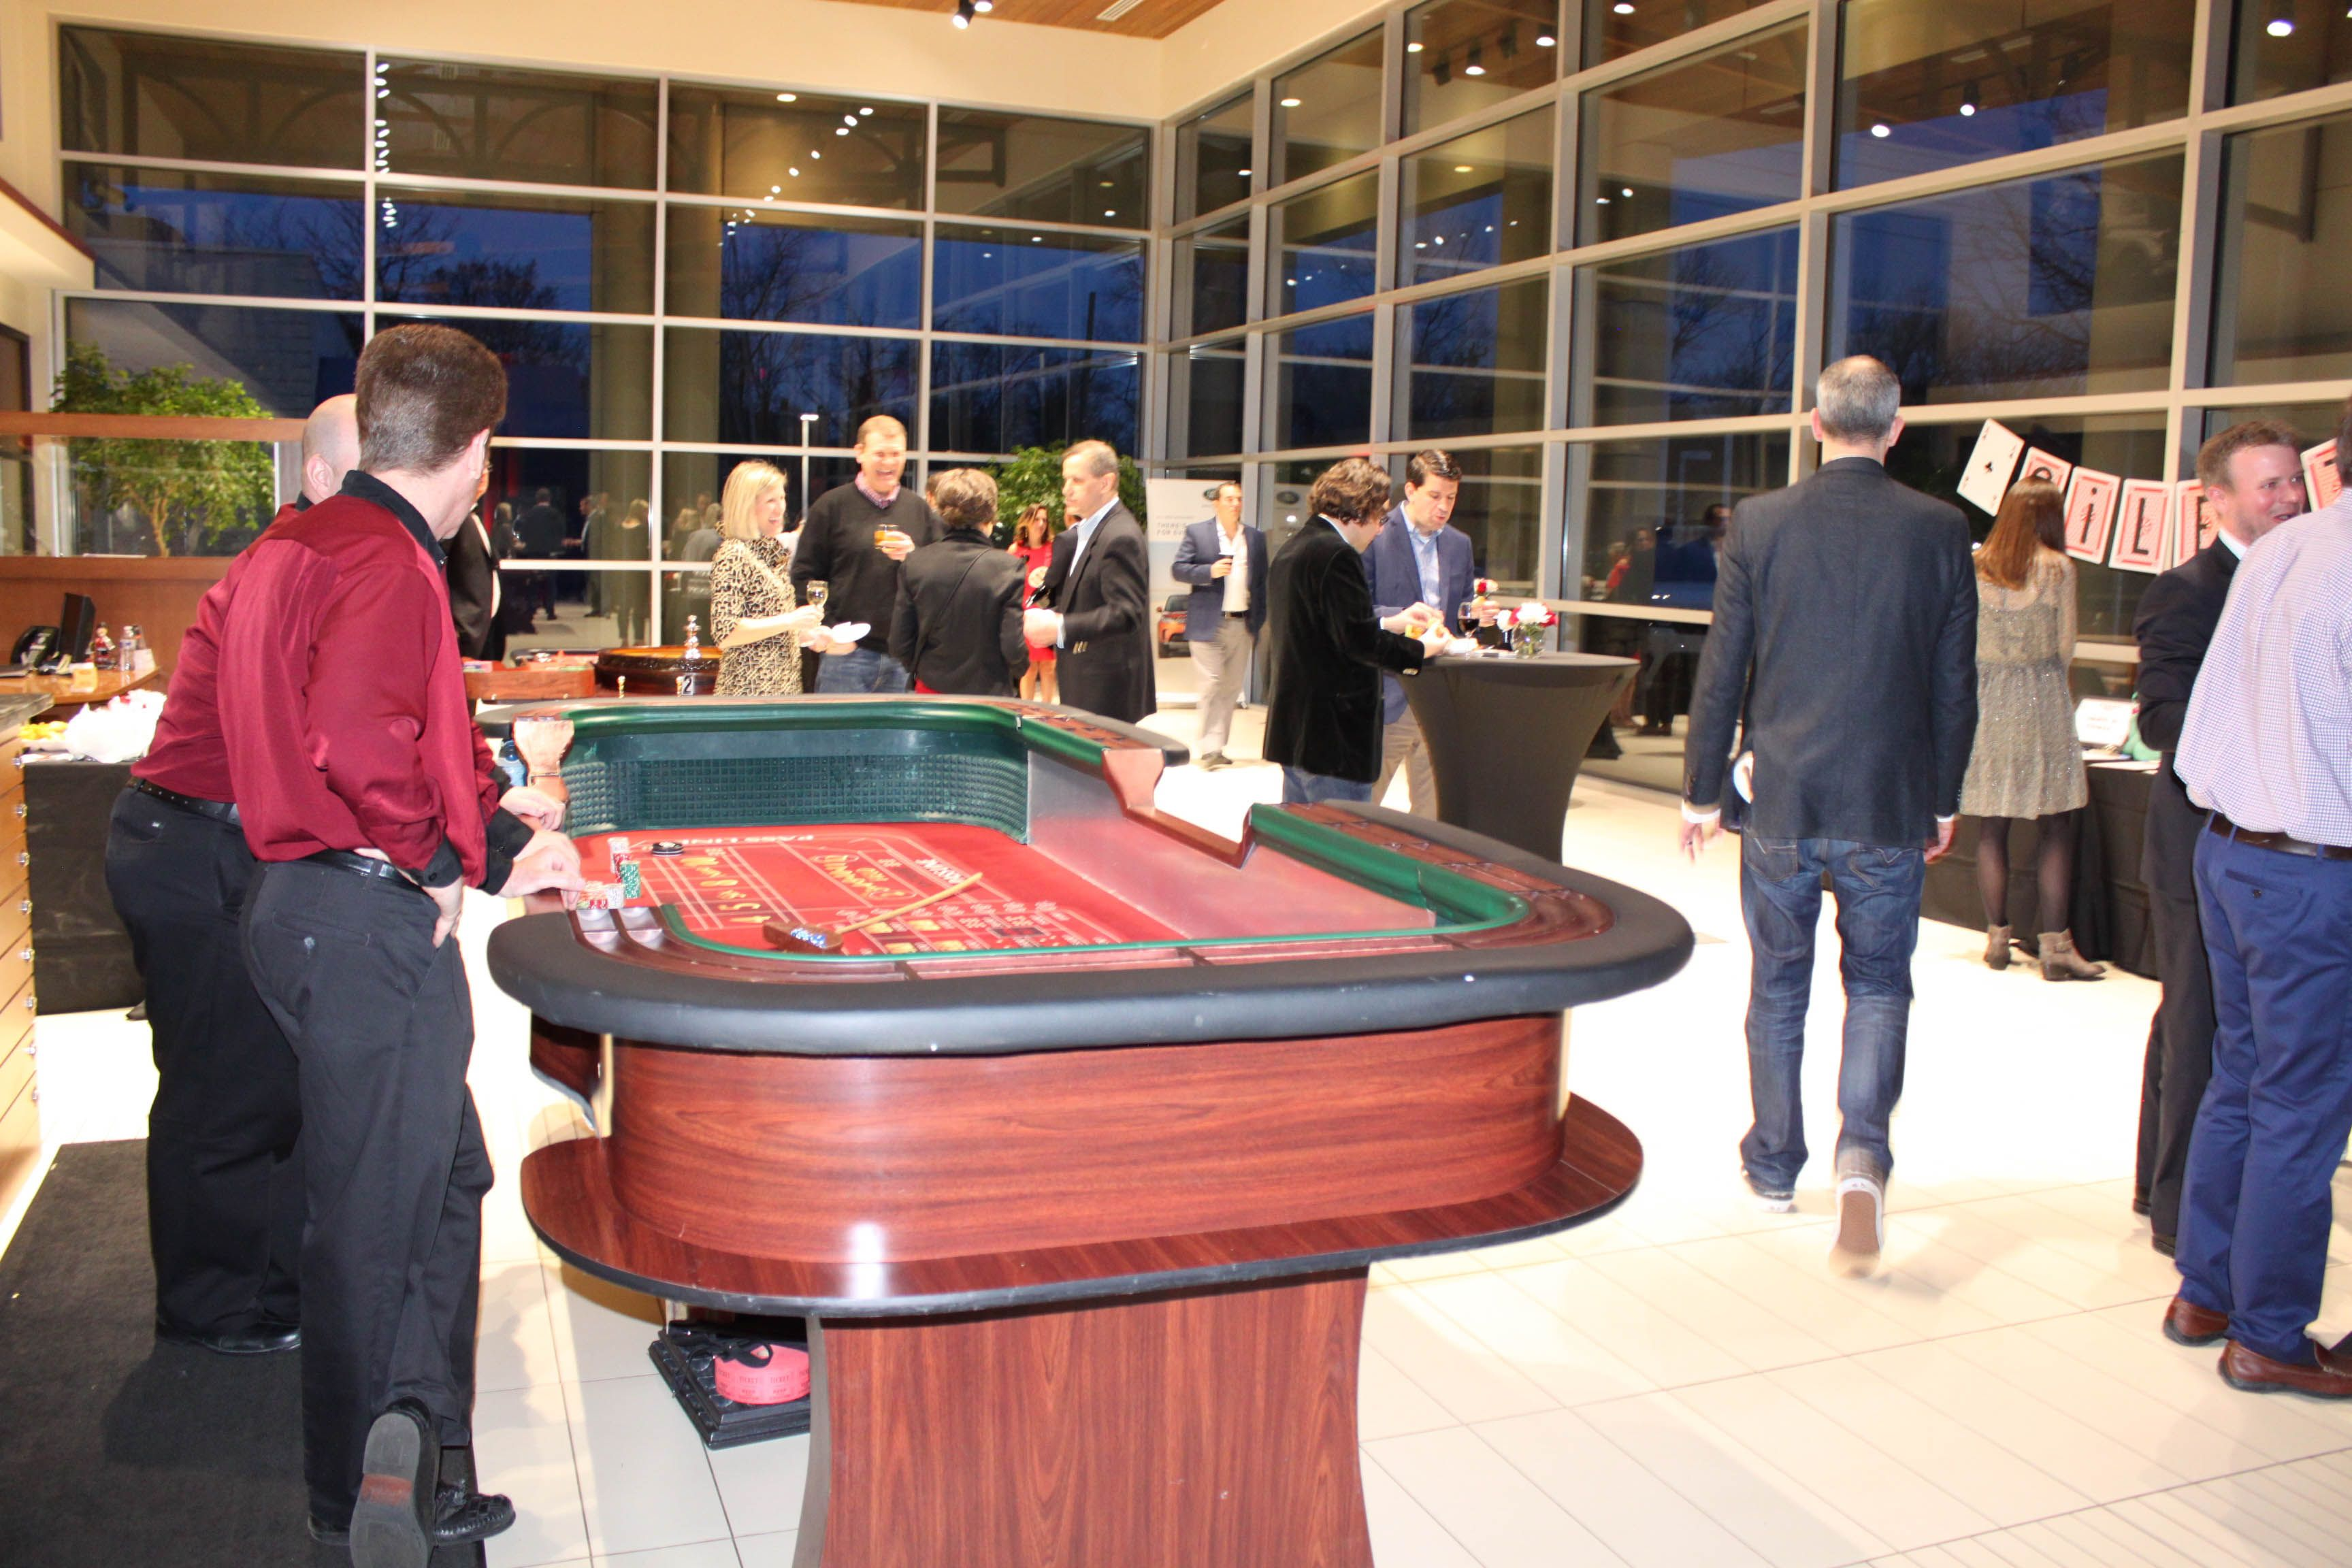 A Thank You To Everyone Who Joined Us For The Incredible Northfield Community Nursery School S Blackjack Ball This Past Saay